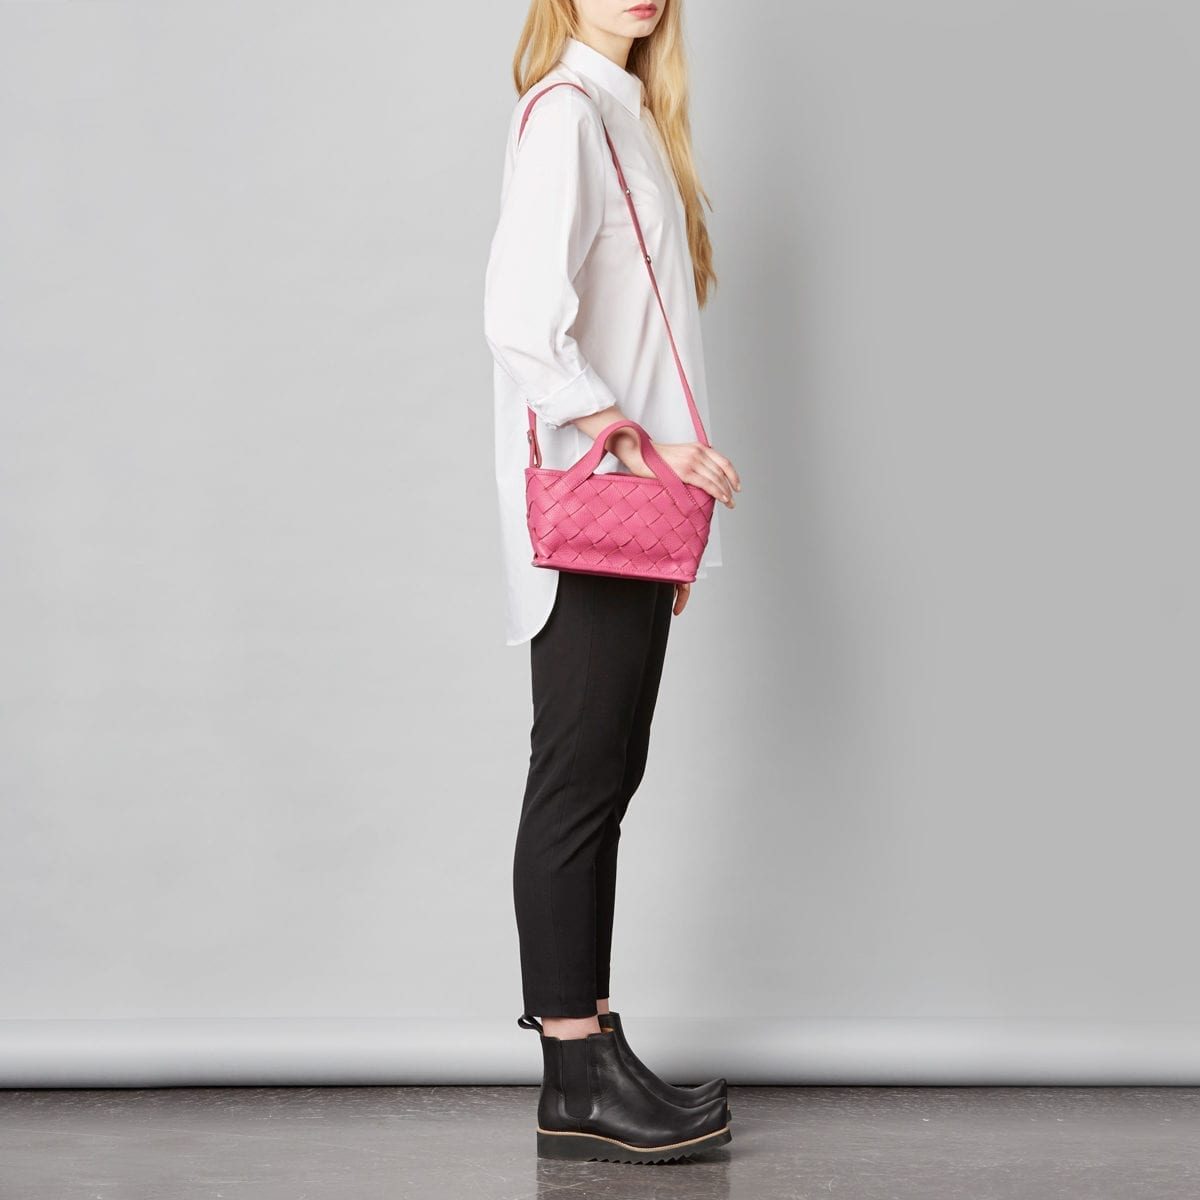 LUMI Annikki Woven Small Tote in bright raspberry colour. This cute and petite tote bag with woven textured details adds a playful twist to your daily style